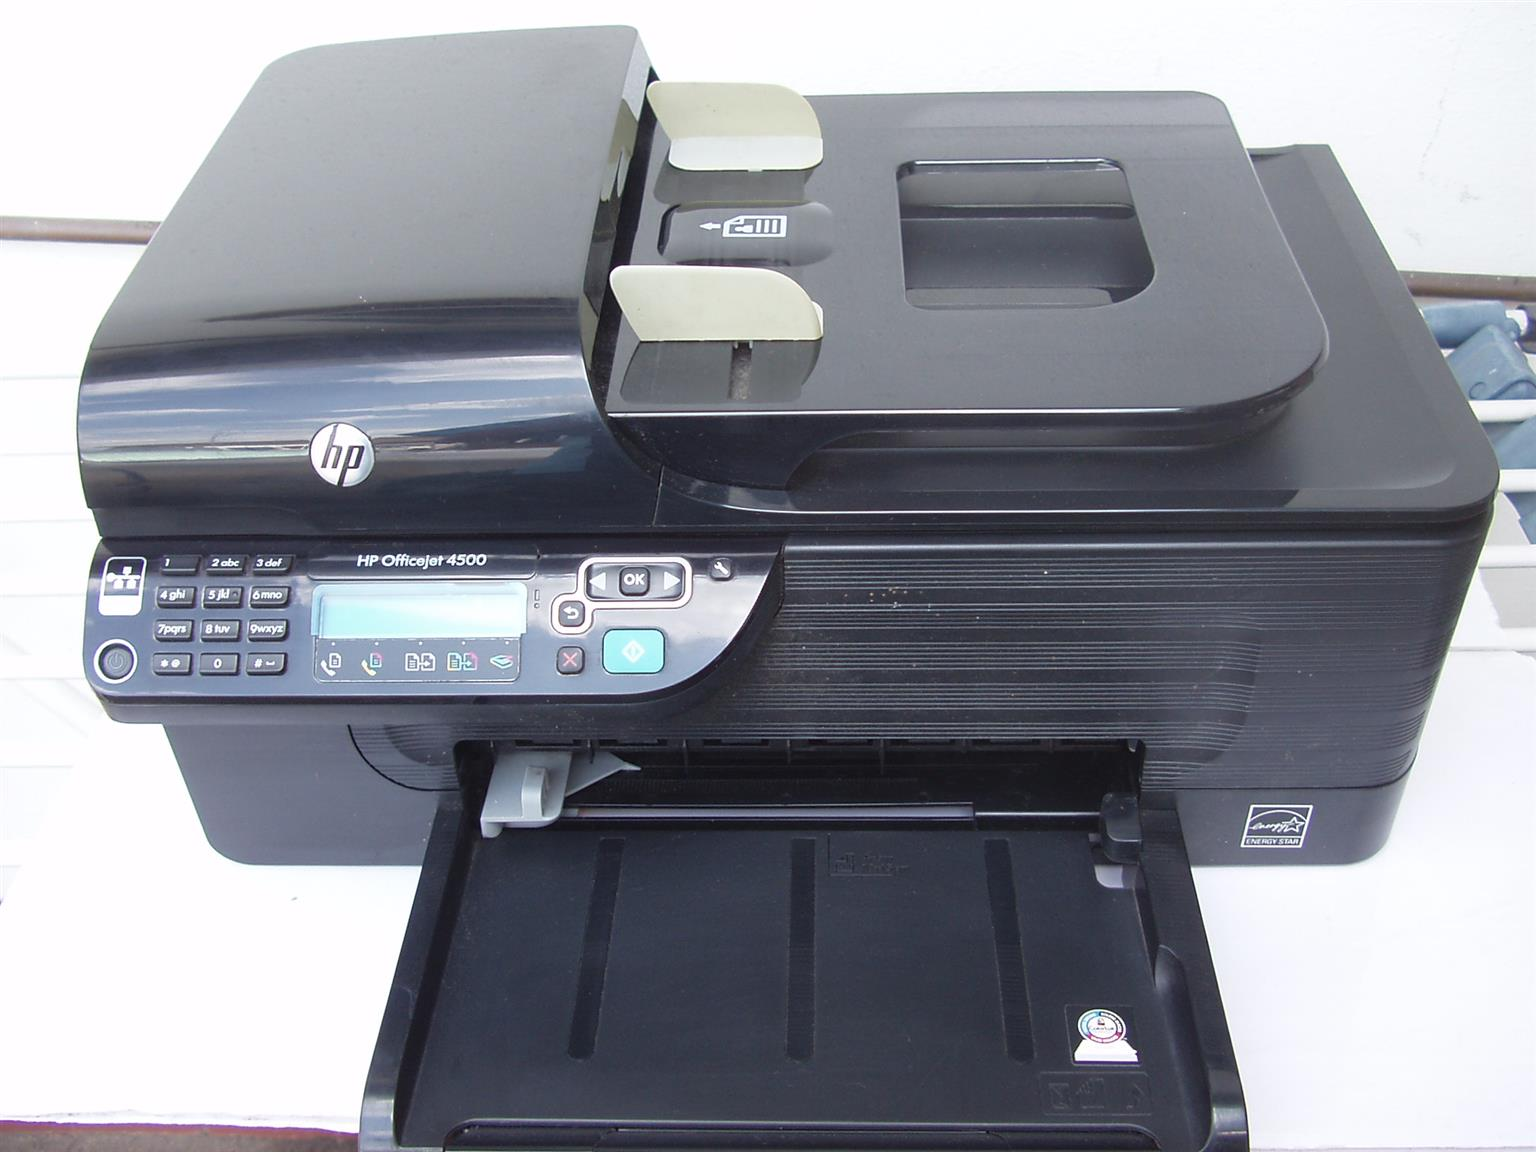 hp 4500 officejet manual browse manual guides u2022 rh npiplus co manual hp officejet 4500 desktop manual hp officejet 4500